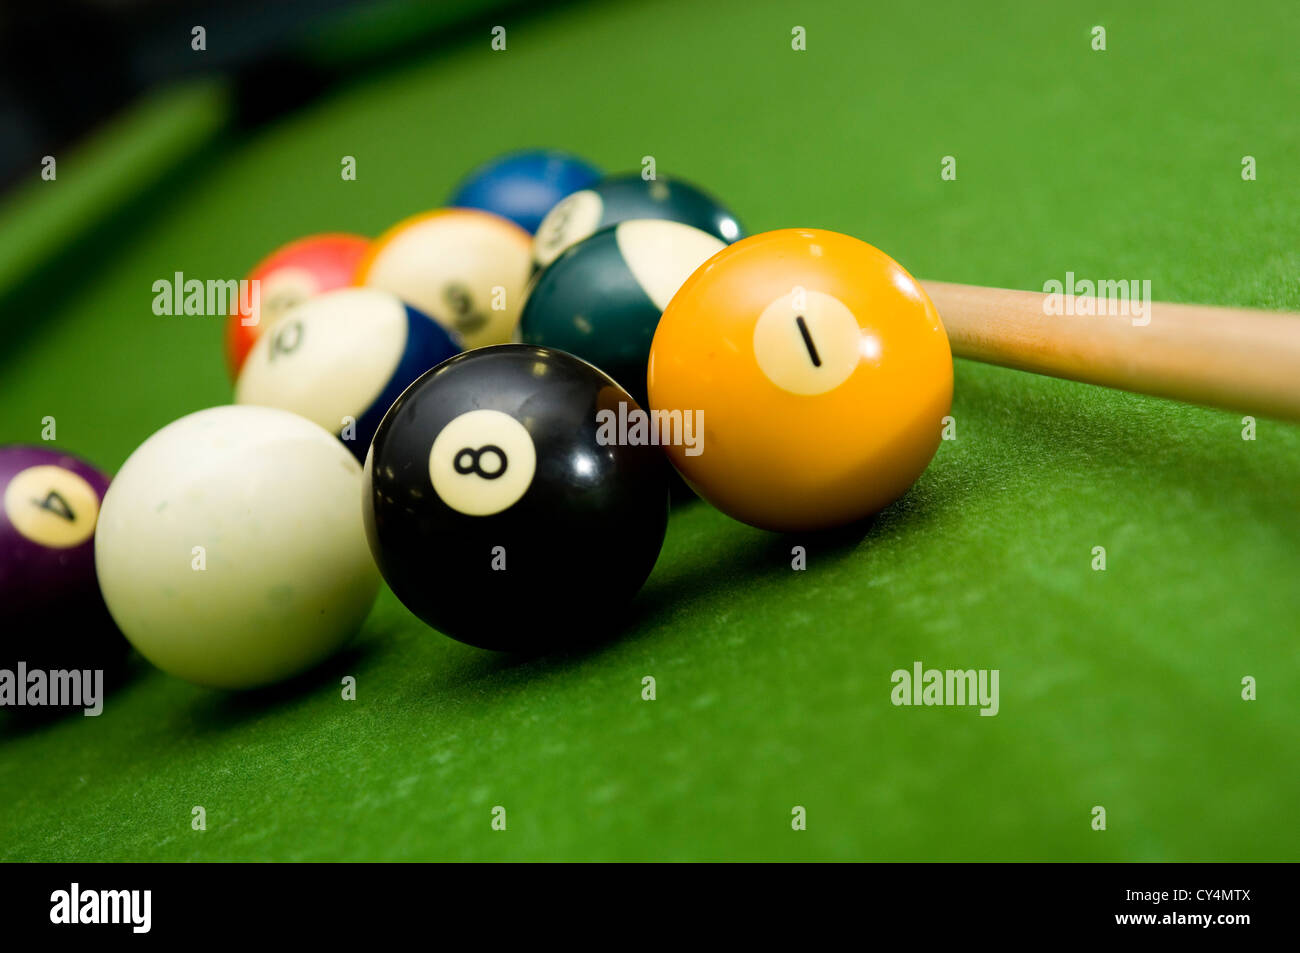 Shooting a game of poor or billiards - Stock Image